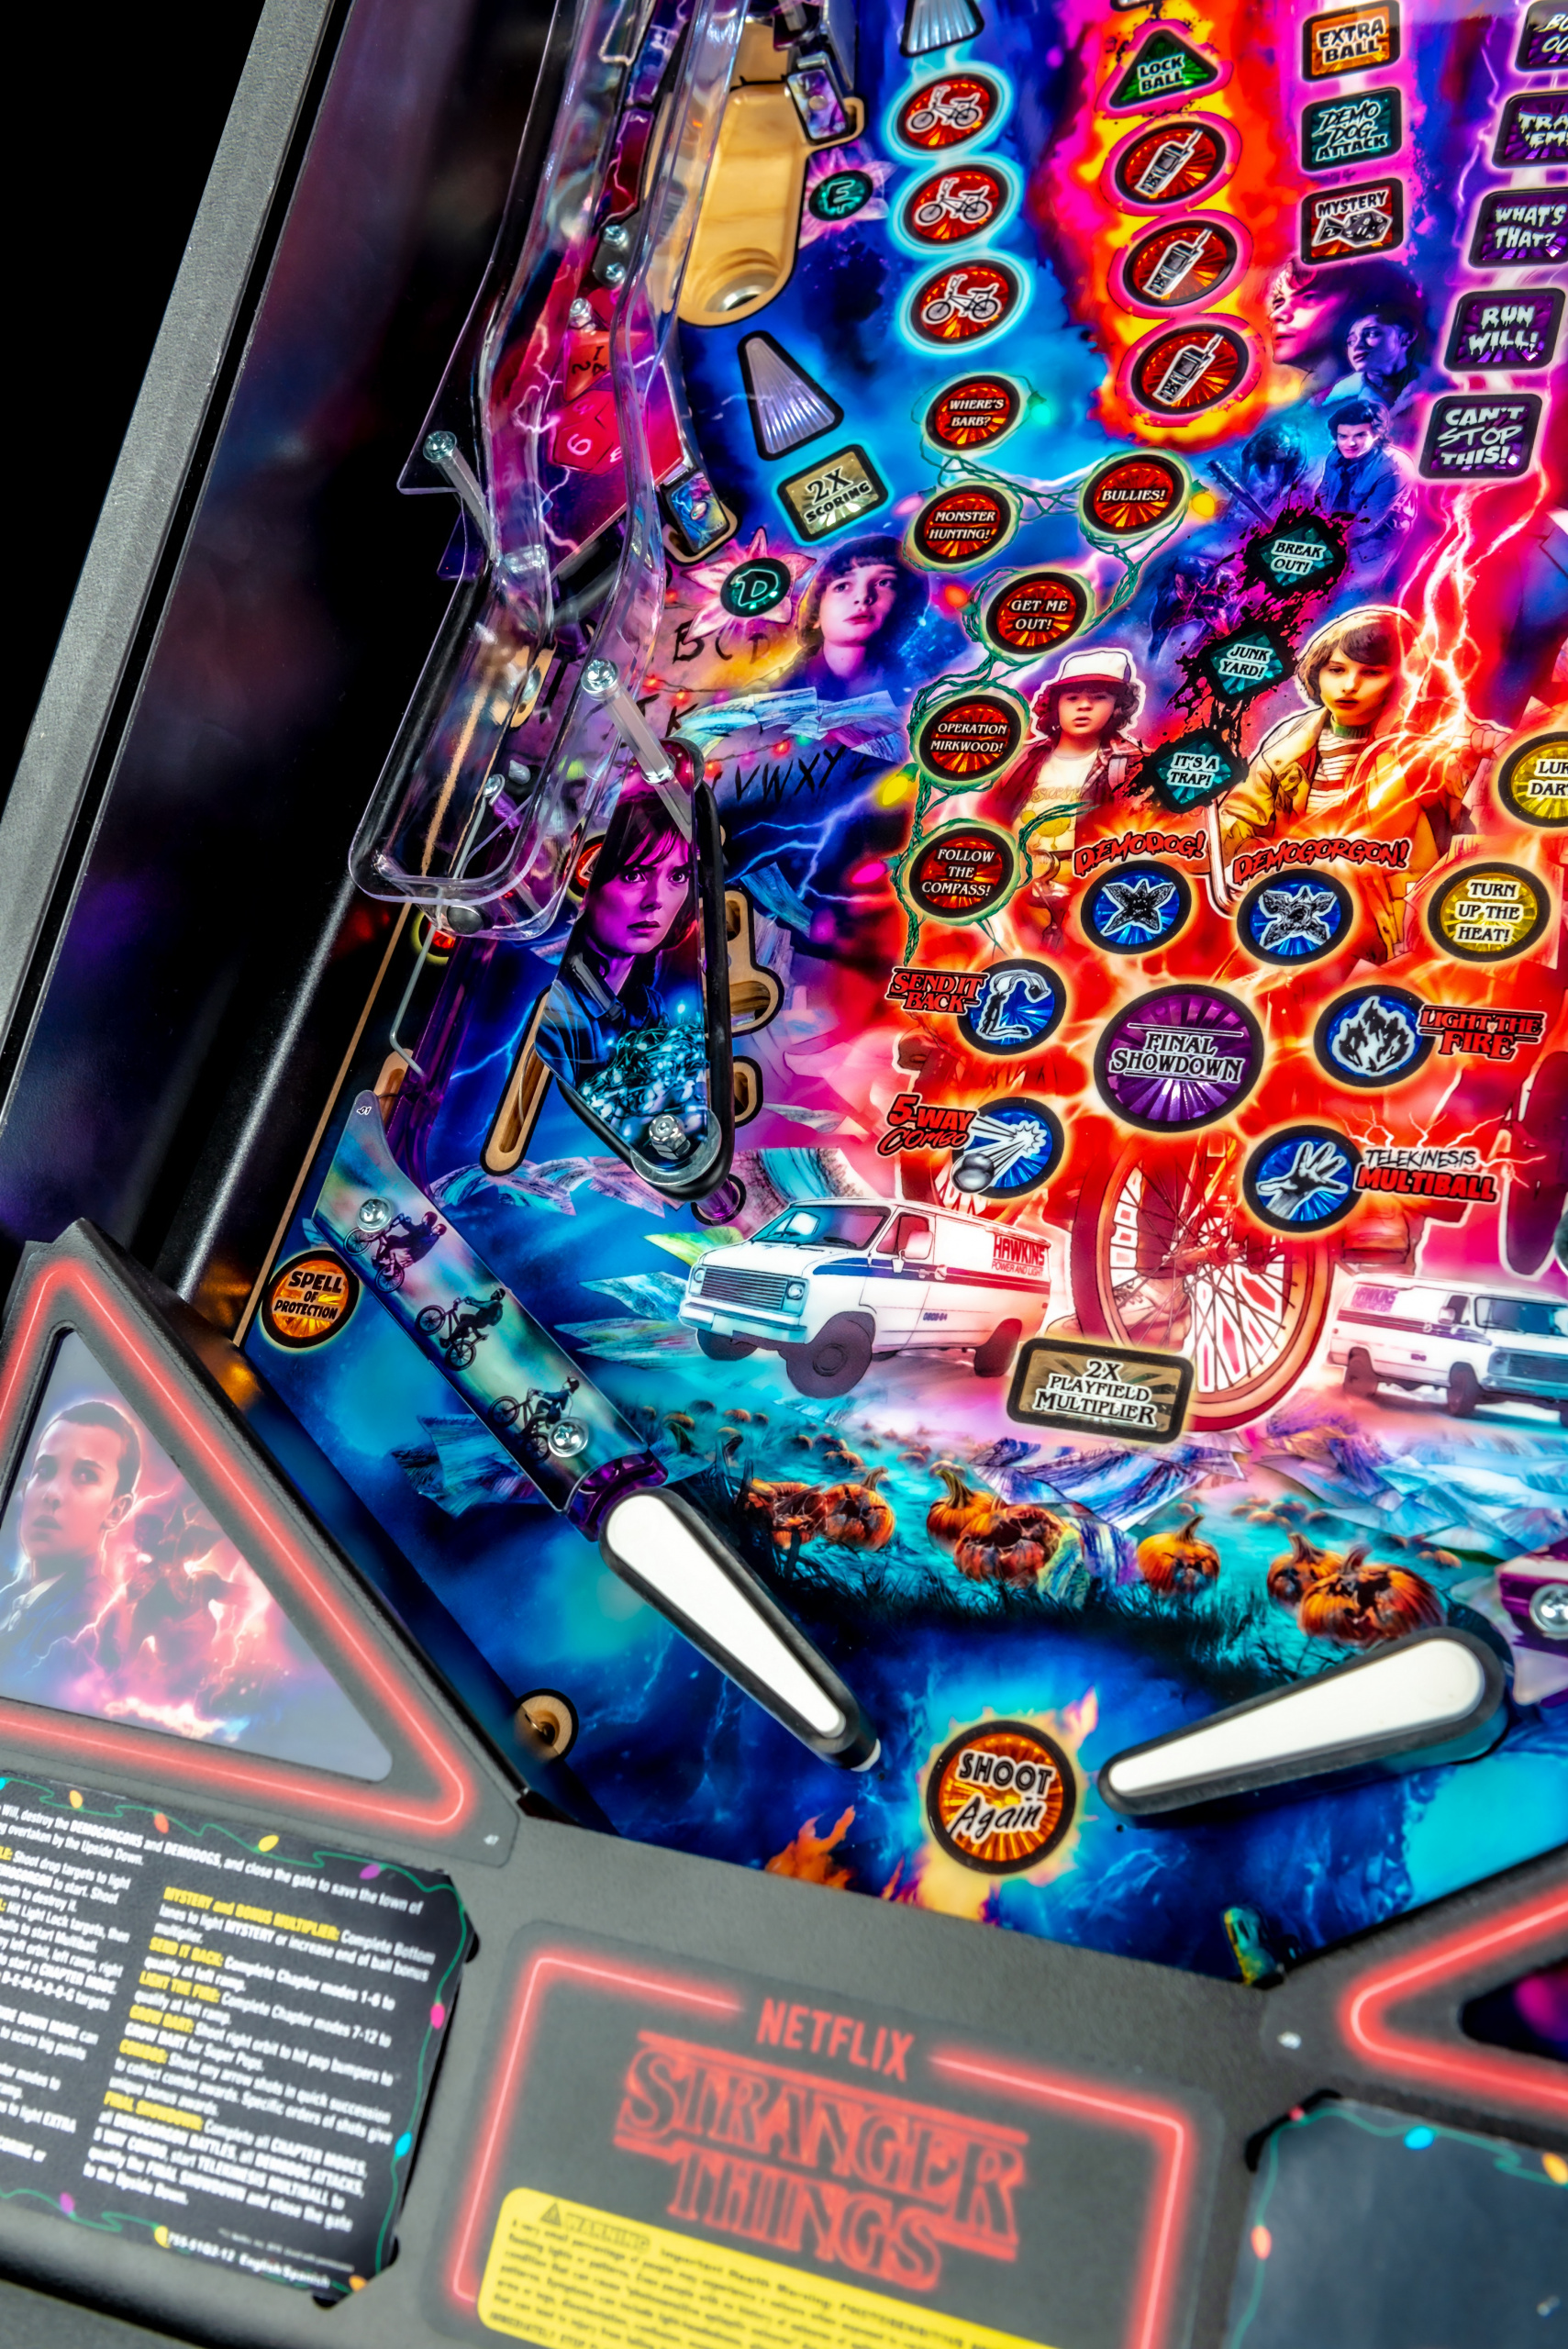 STRANGER THINGS PREMIUM PINBALL Image - Click To Enlarge